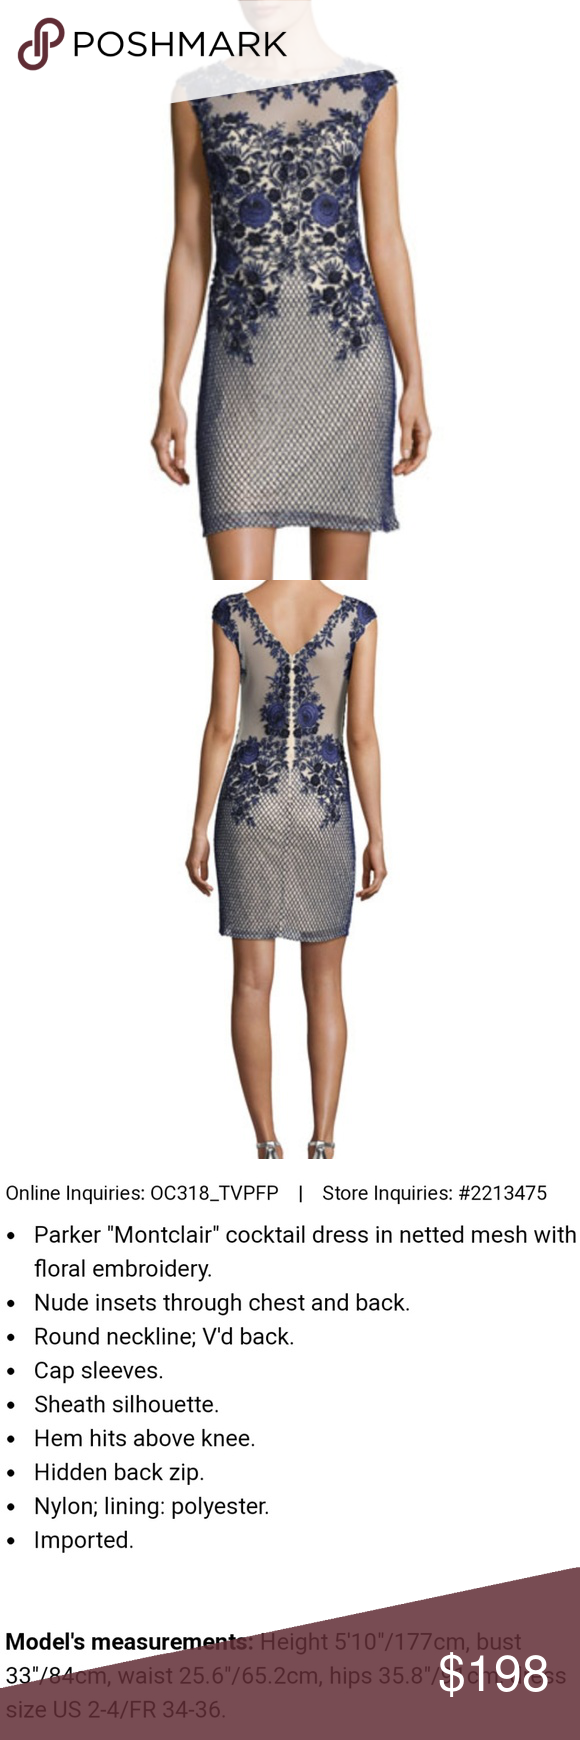 2f4920cd2a3c Parker Black Montclair Cap- Sleeve Floral Mesh Cocktail Dress with Navy  colored beading... Absolutely Stunning! Sold out at Neiman Marcus.